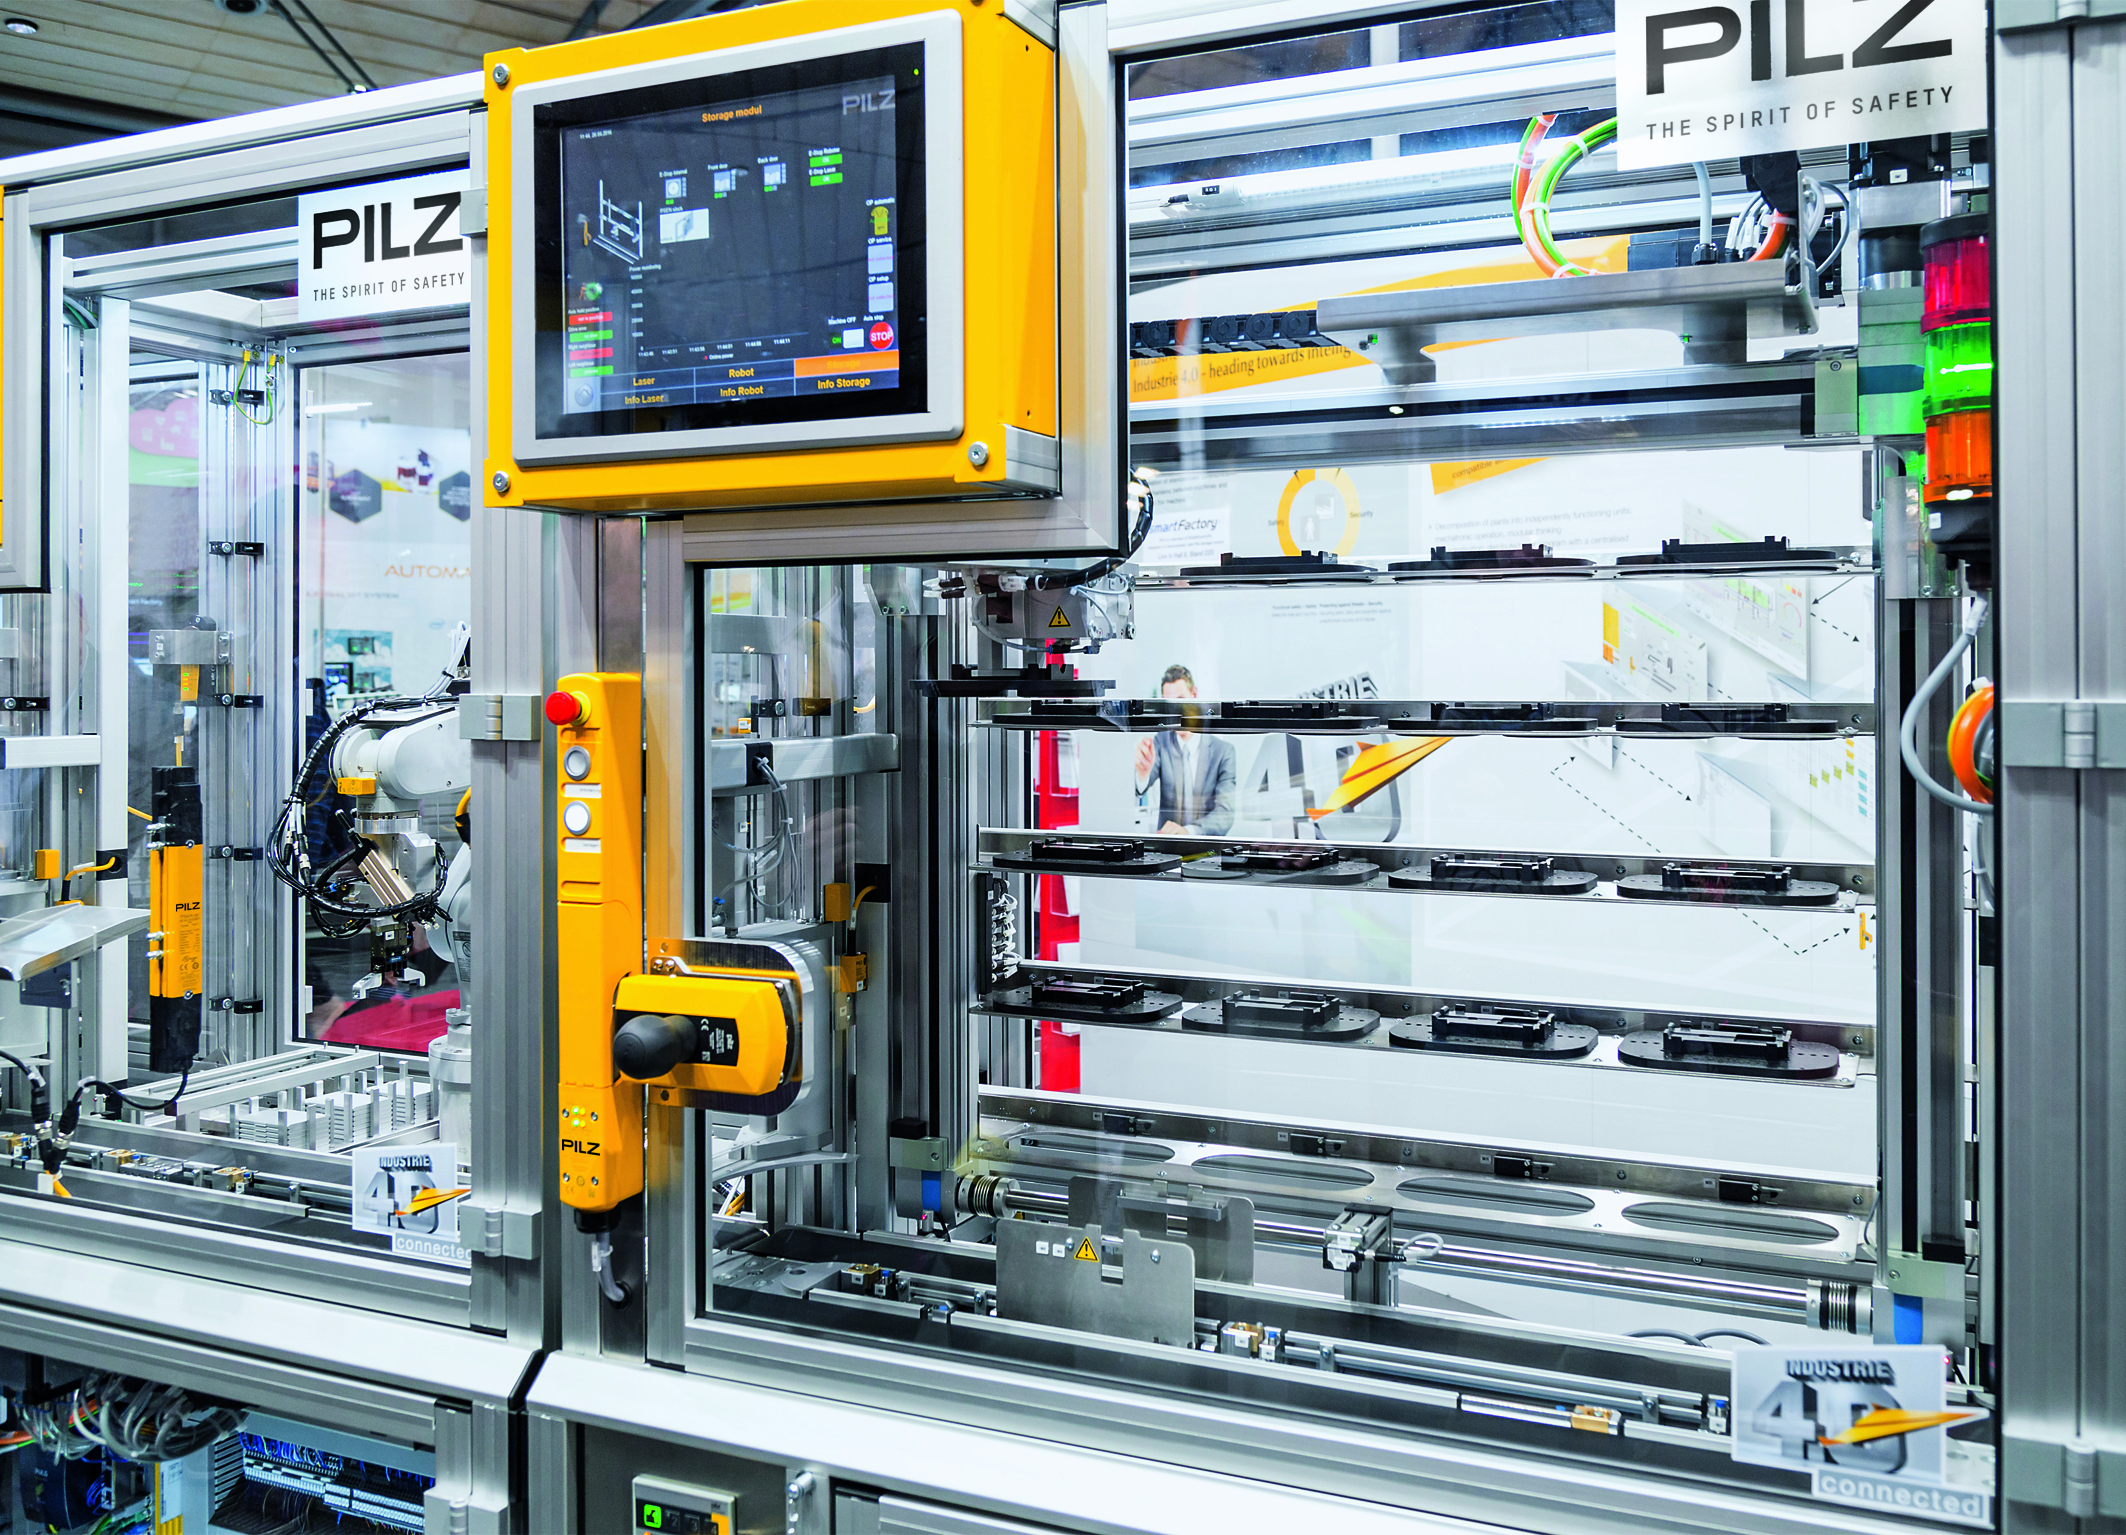 Pilz At The Hannover Messe 2018 Hall 9 Stand D17 Modular To Wiring Solutions Factory Of Future On Shows Innovative Automation For Safety Gate Monitoring Among Them